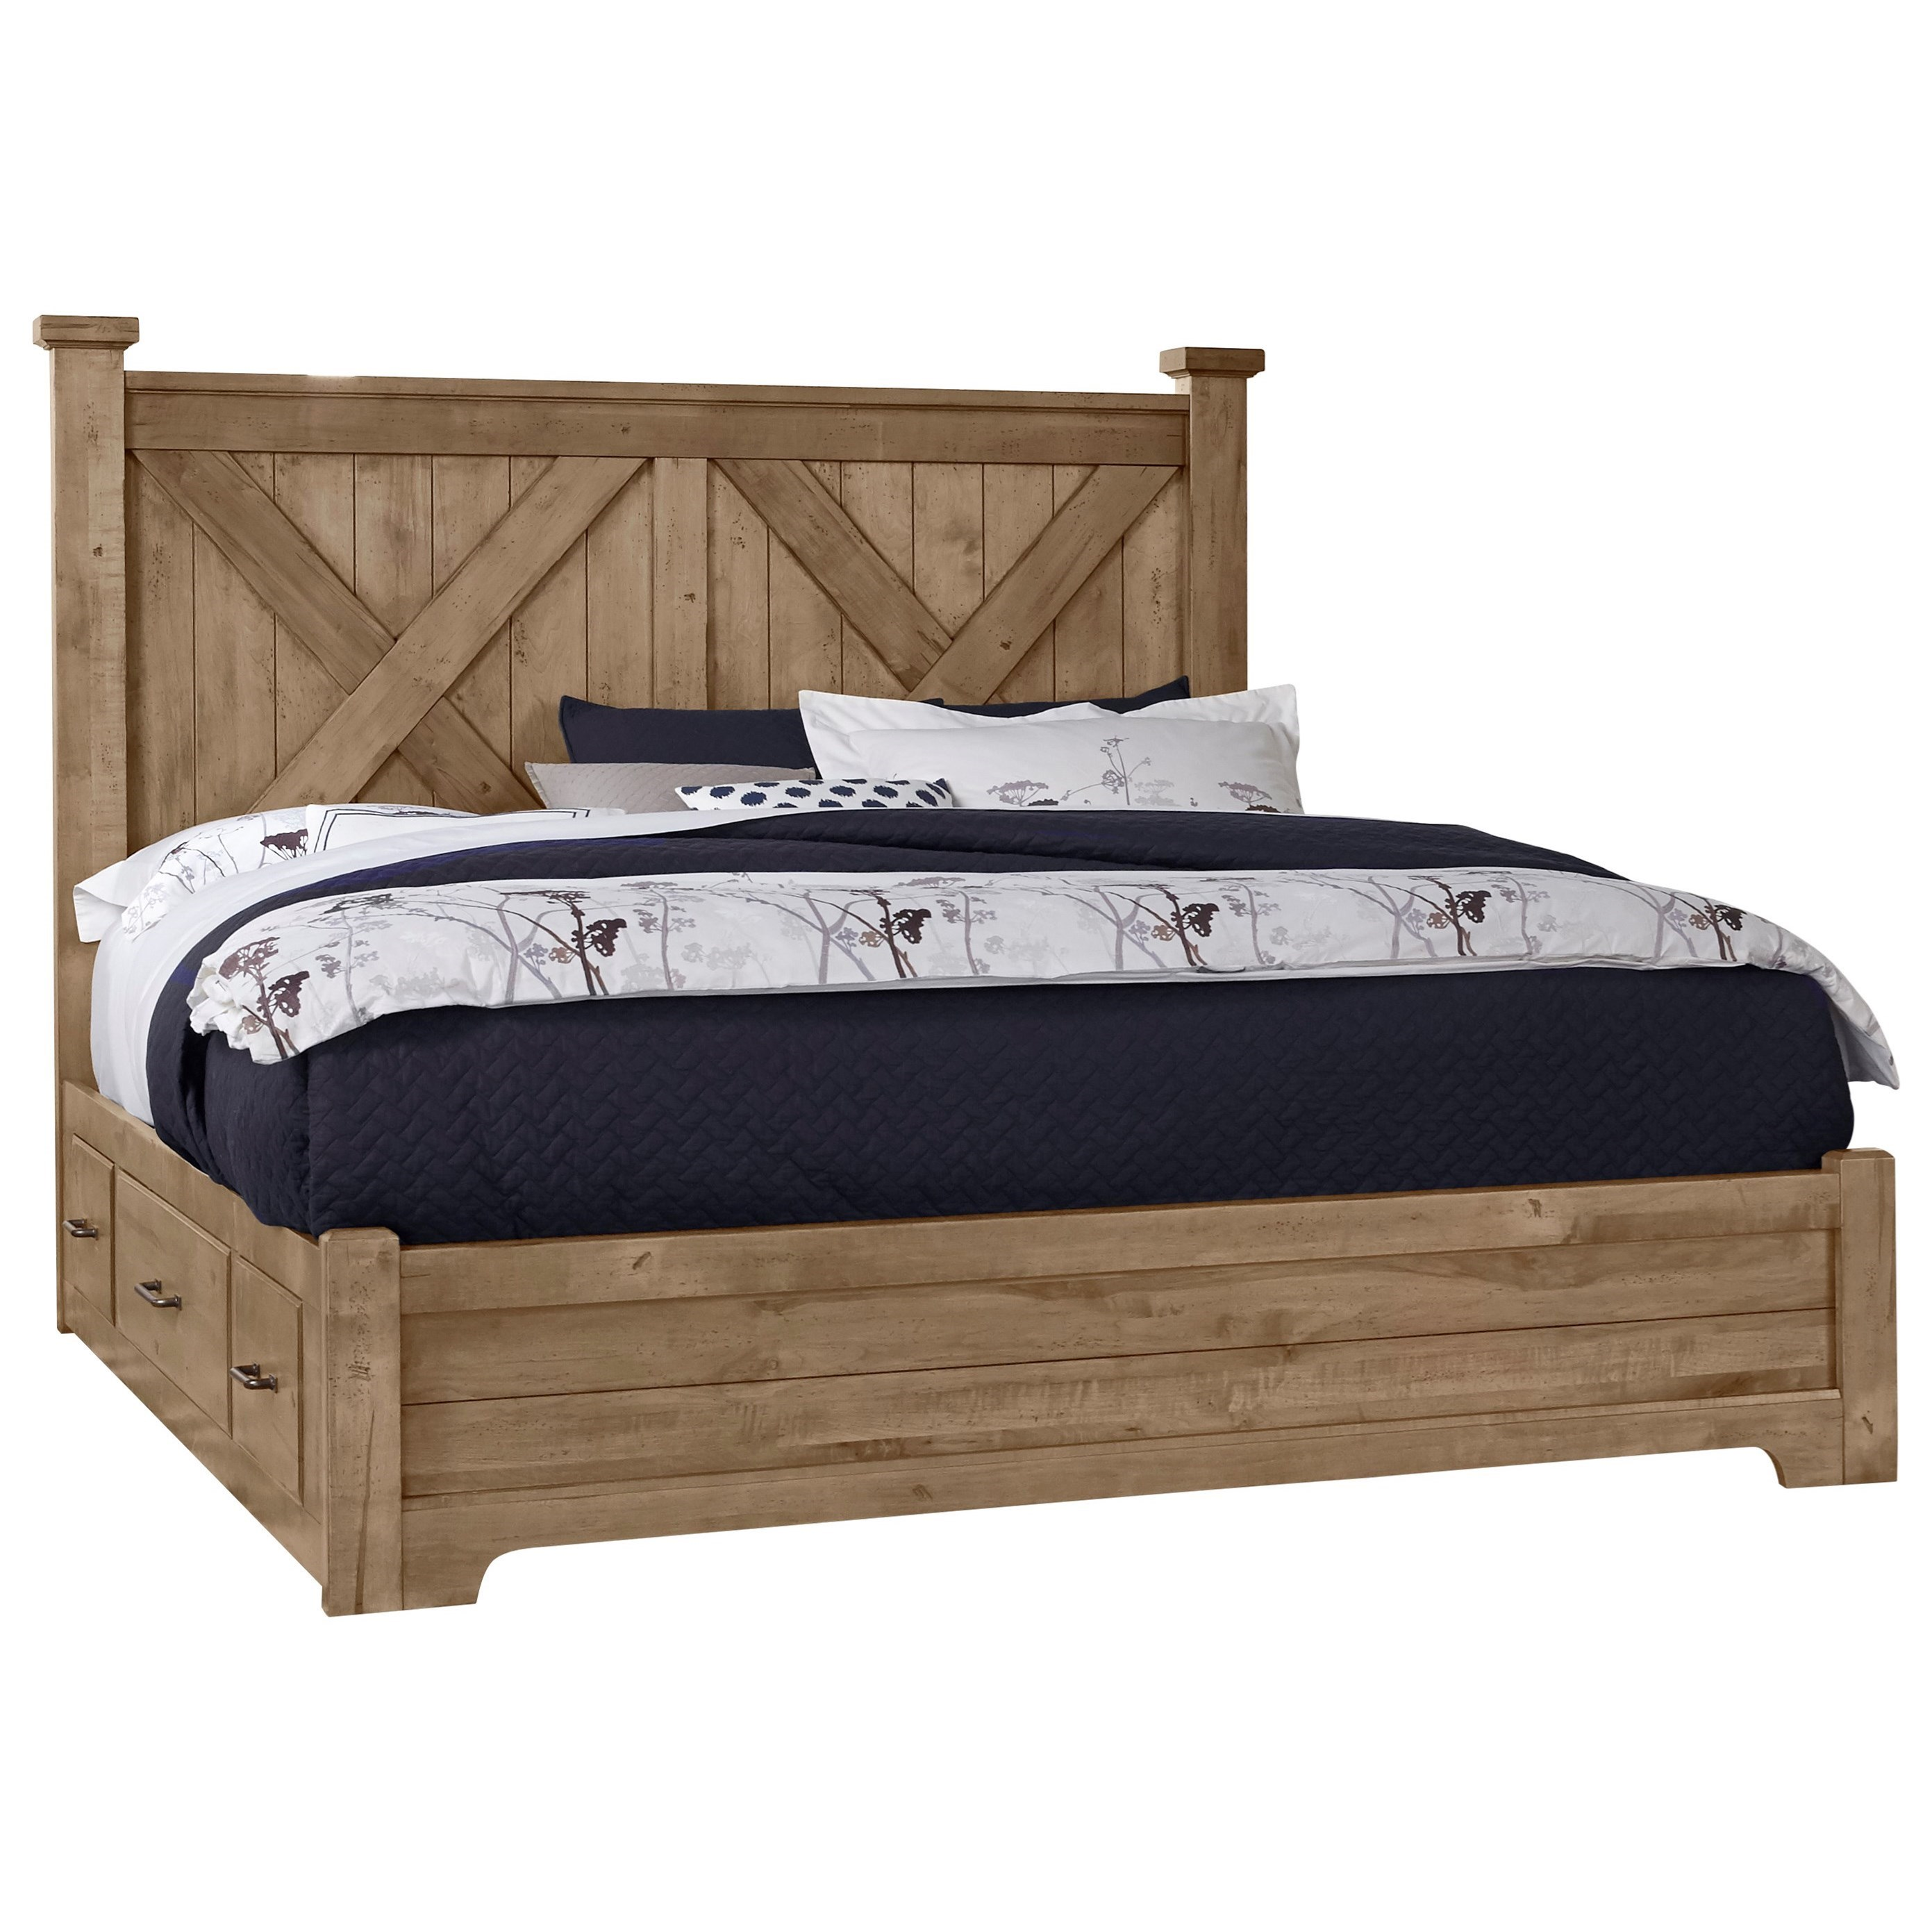 Solid Wood King Barndoor X Bed With Double Side Storage